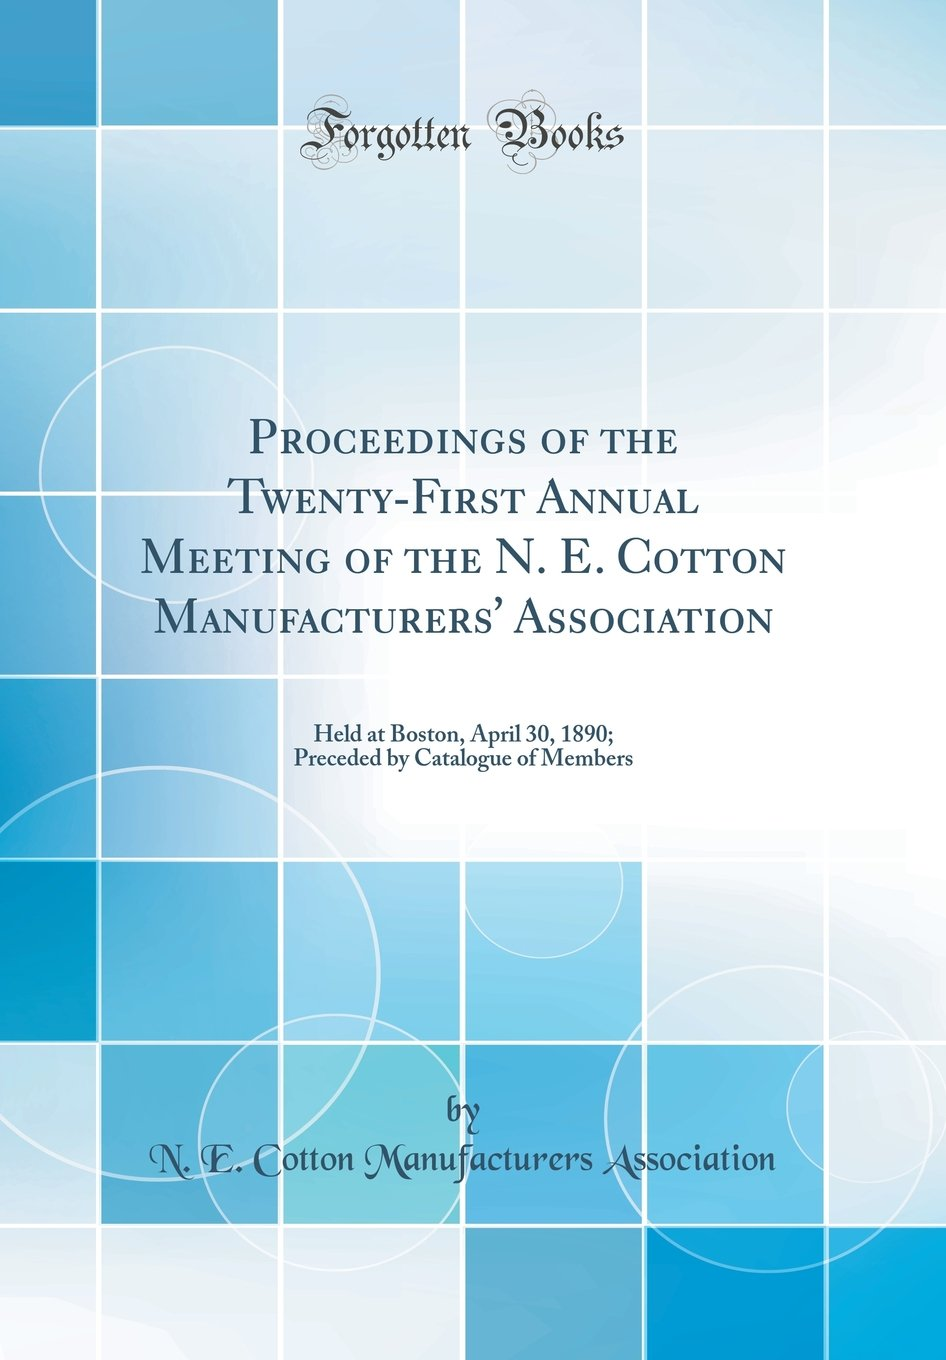 Proceedings of the Twenty-First Annual Meeting of the N. E. Cotton Manufacturers' Association: Held at Boston, April 30, 1890; Preceded by Catalogue of Members (Classic Reprint) PDF